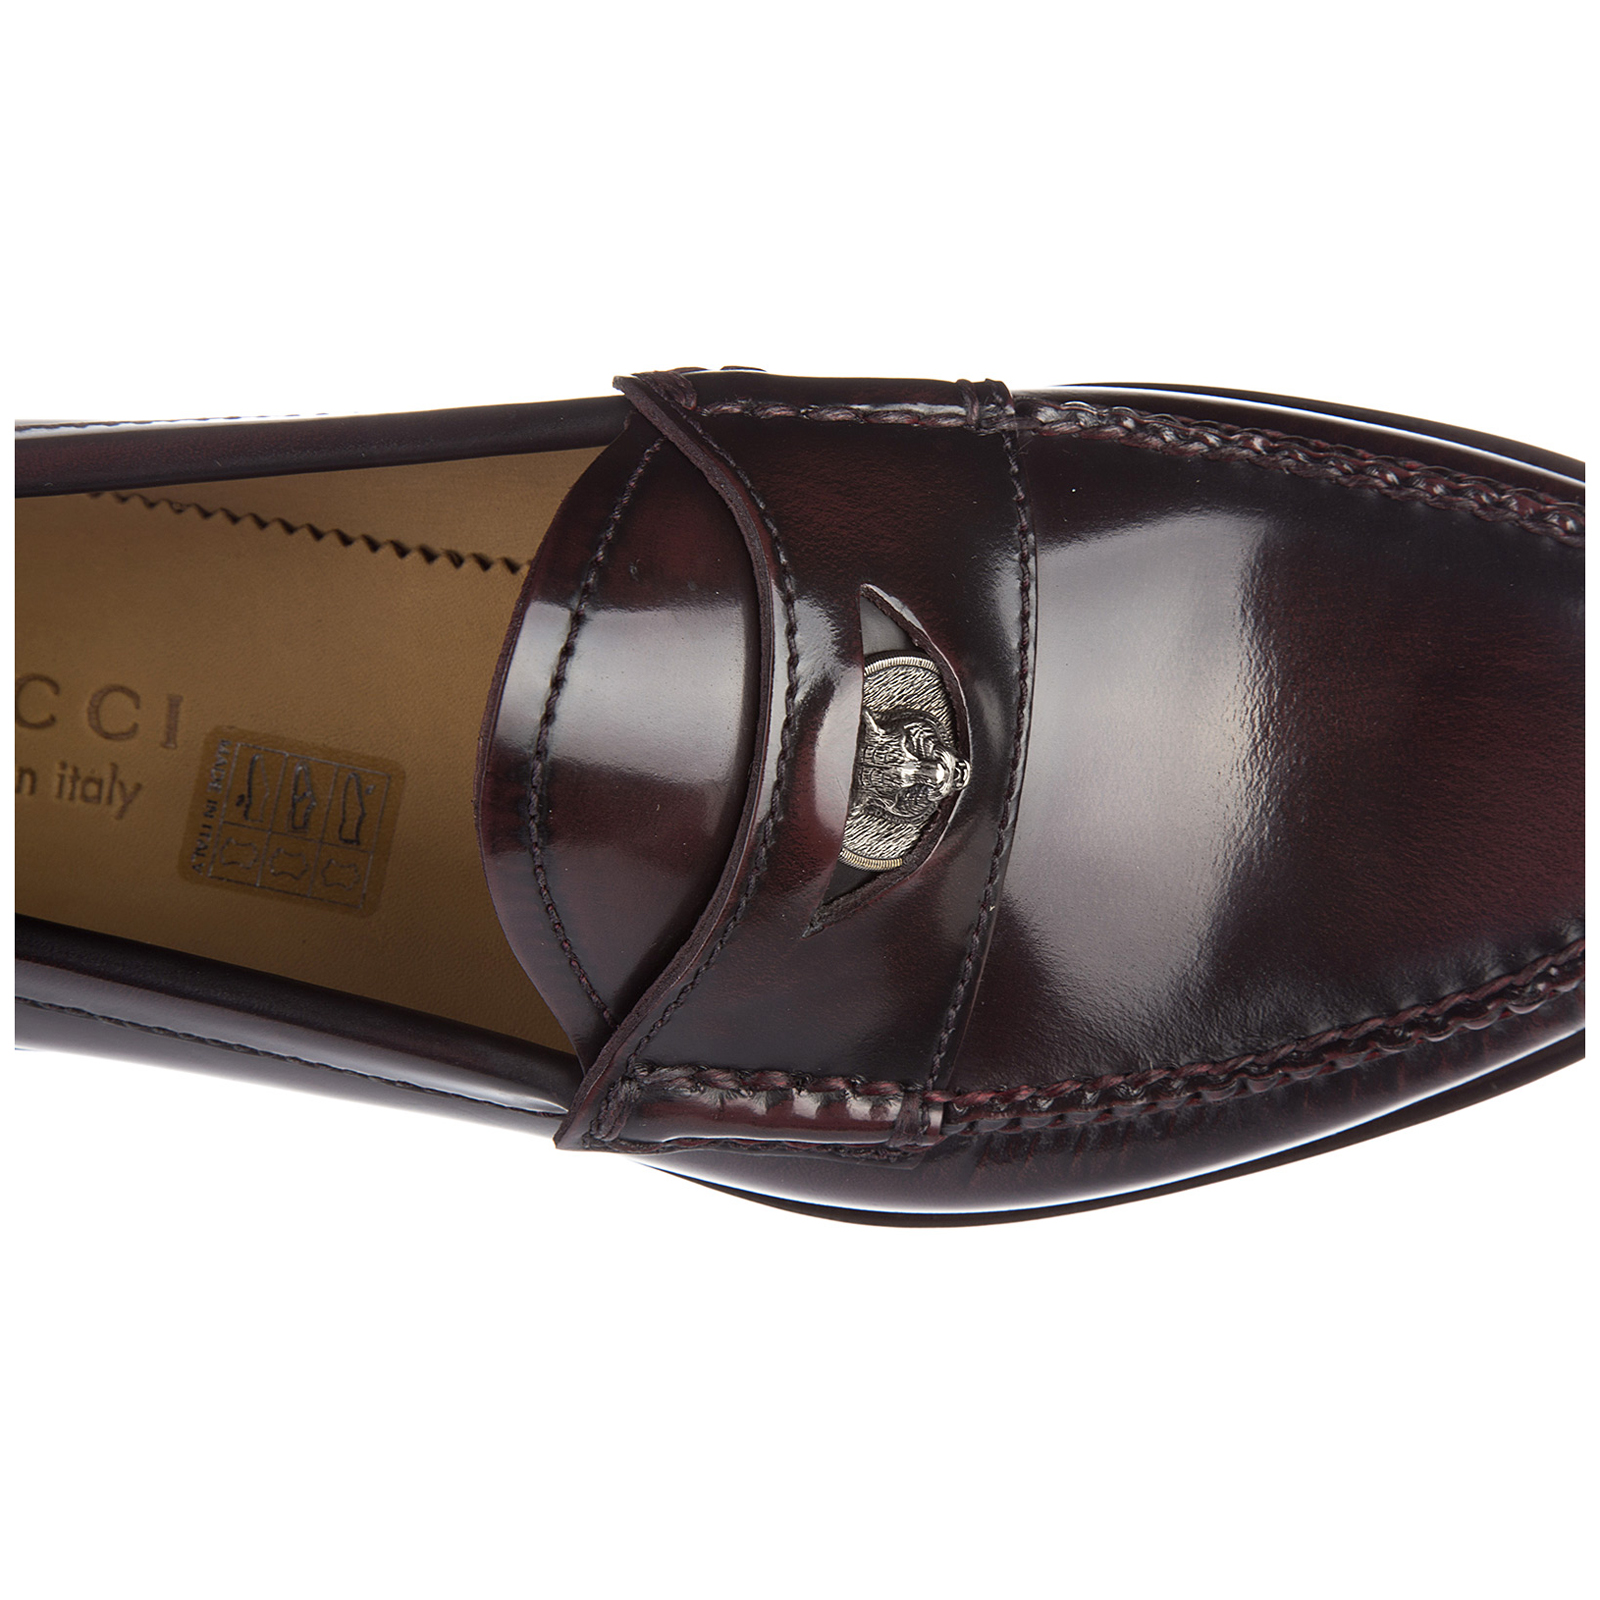 Info Harga D Island Shoes Slip On Moccasin Office Leather Dark Brown Mocasine Casual Loafers Black Moccasins Gucci 429206 Bxp00 6123 Chardonnay